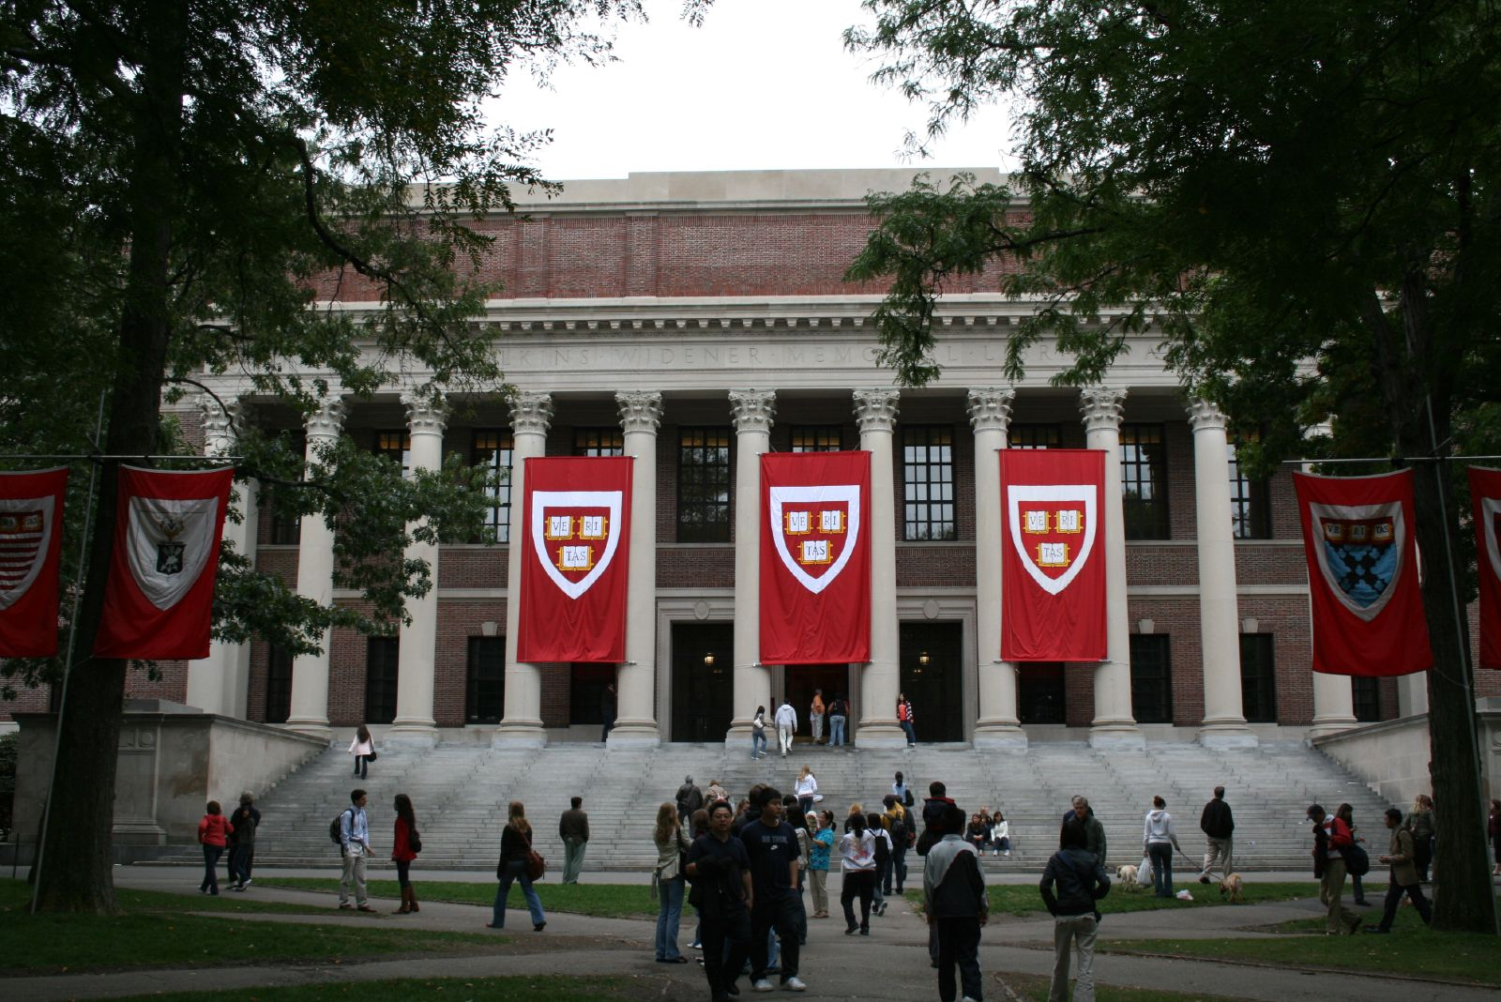 Harvard University had a record 43,330 applicants this year, of which 935 were notified of early acceptance.